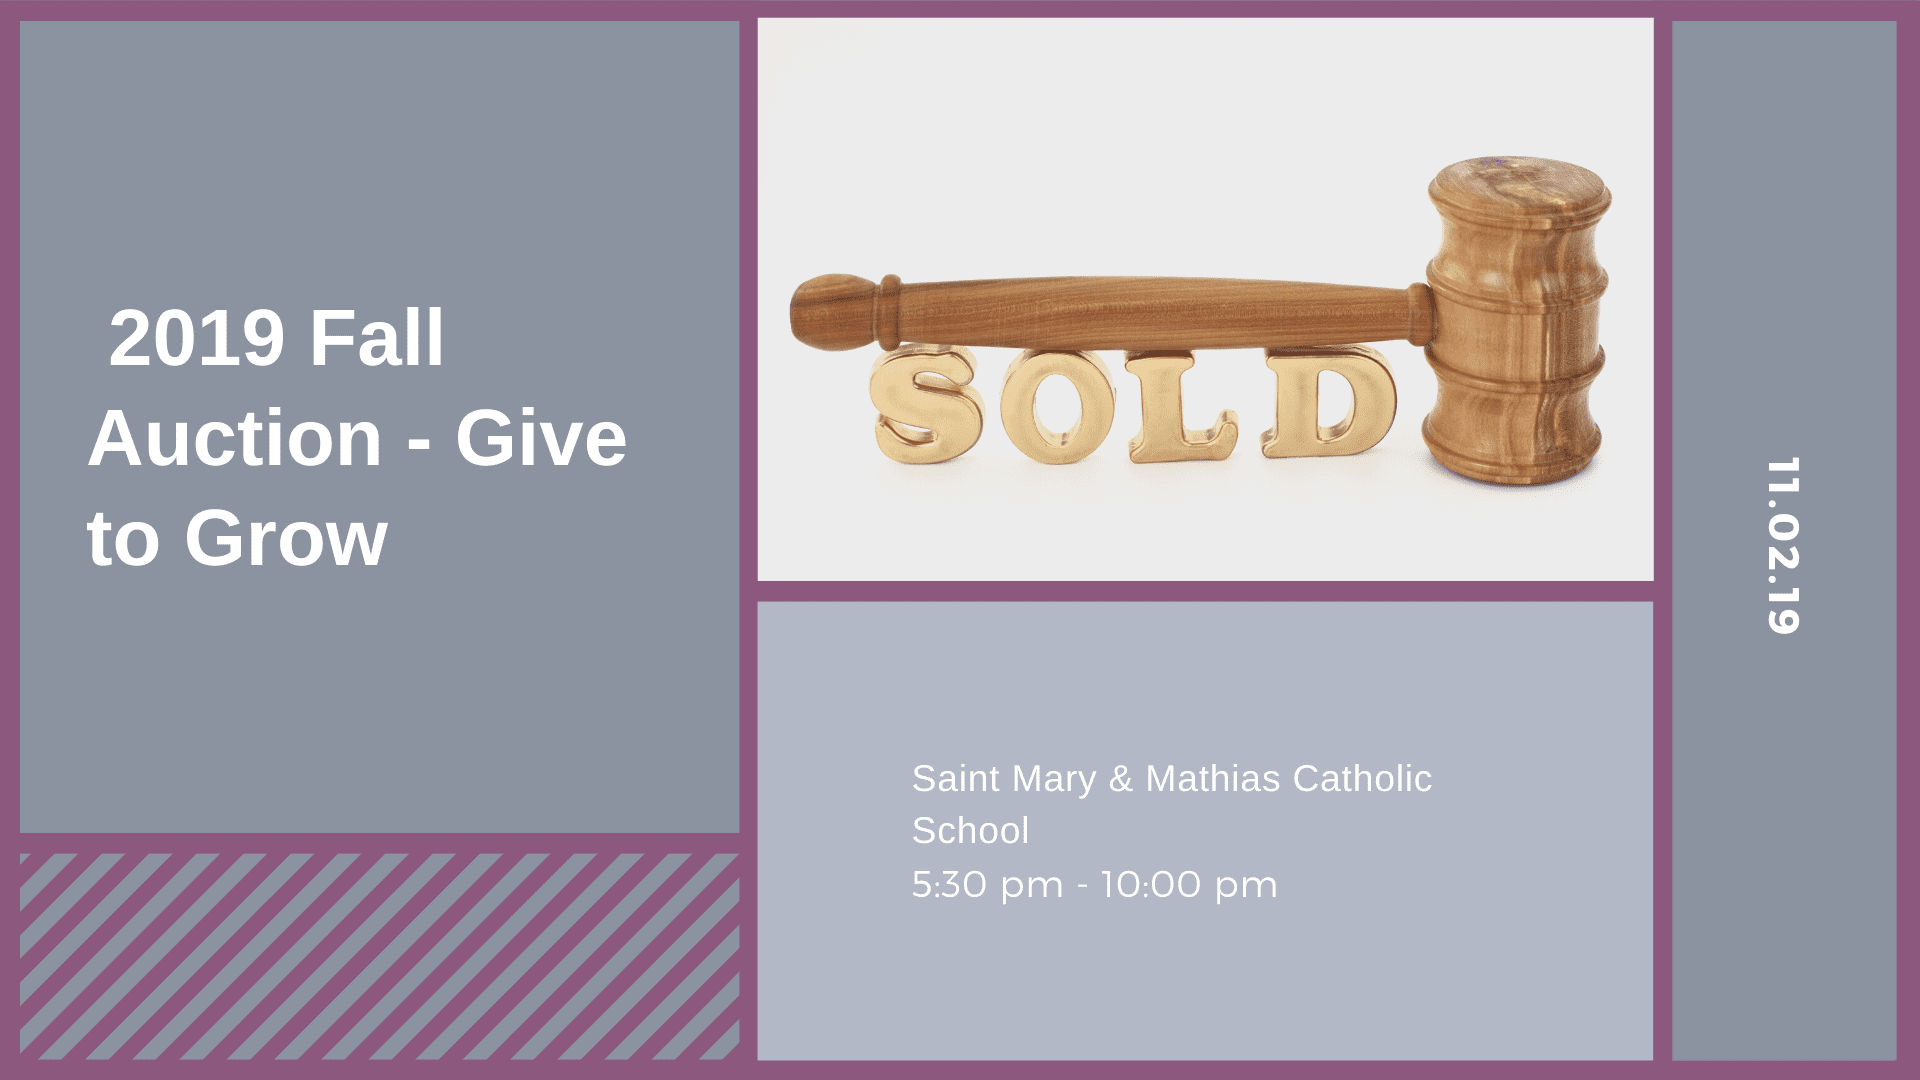 2019 Fall Auction - Give to Grow